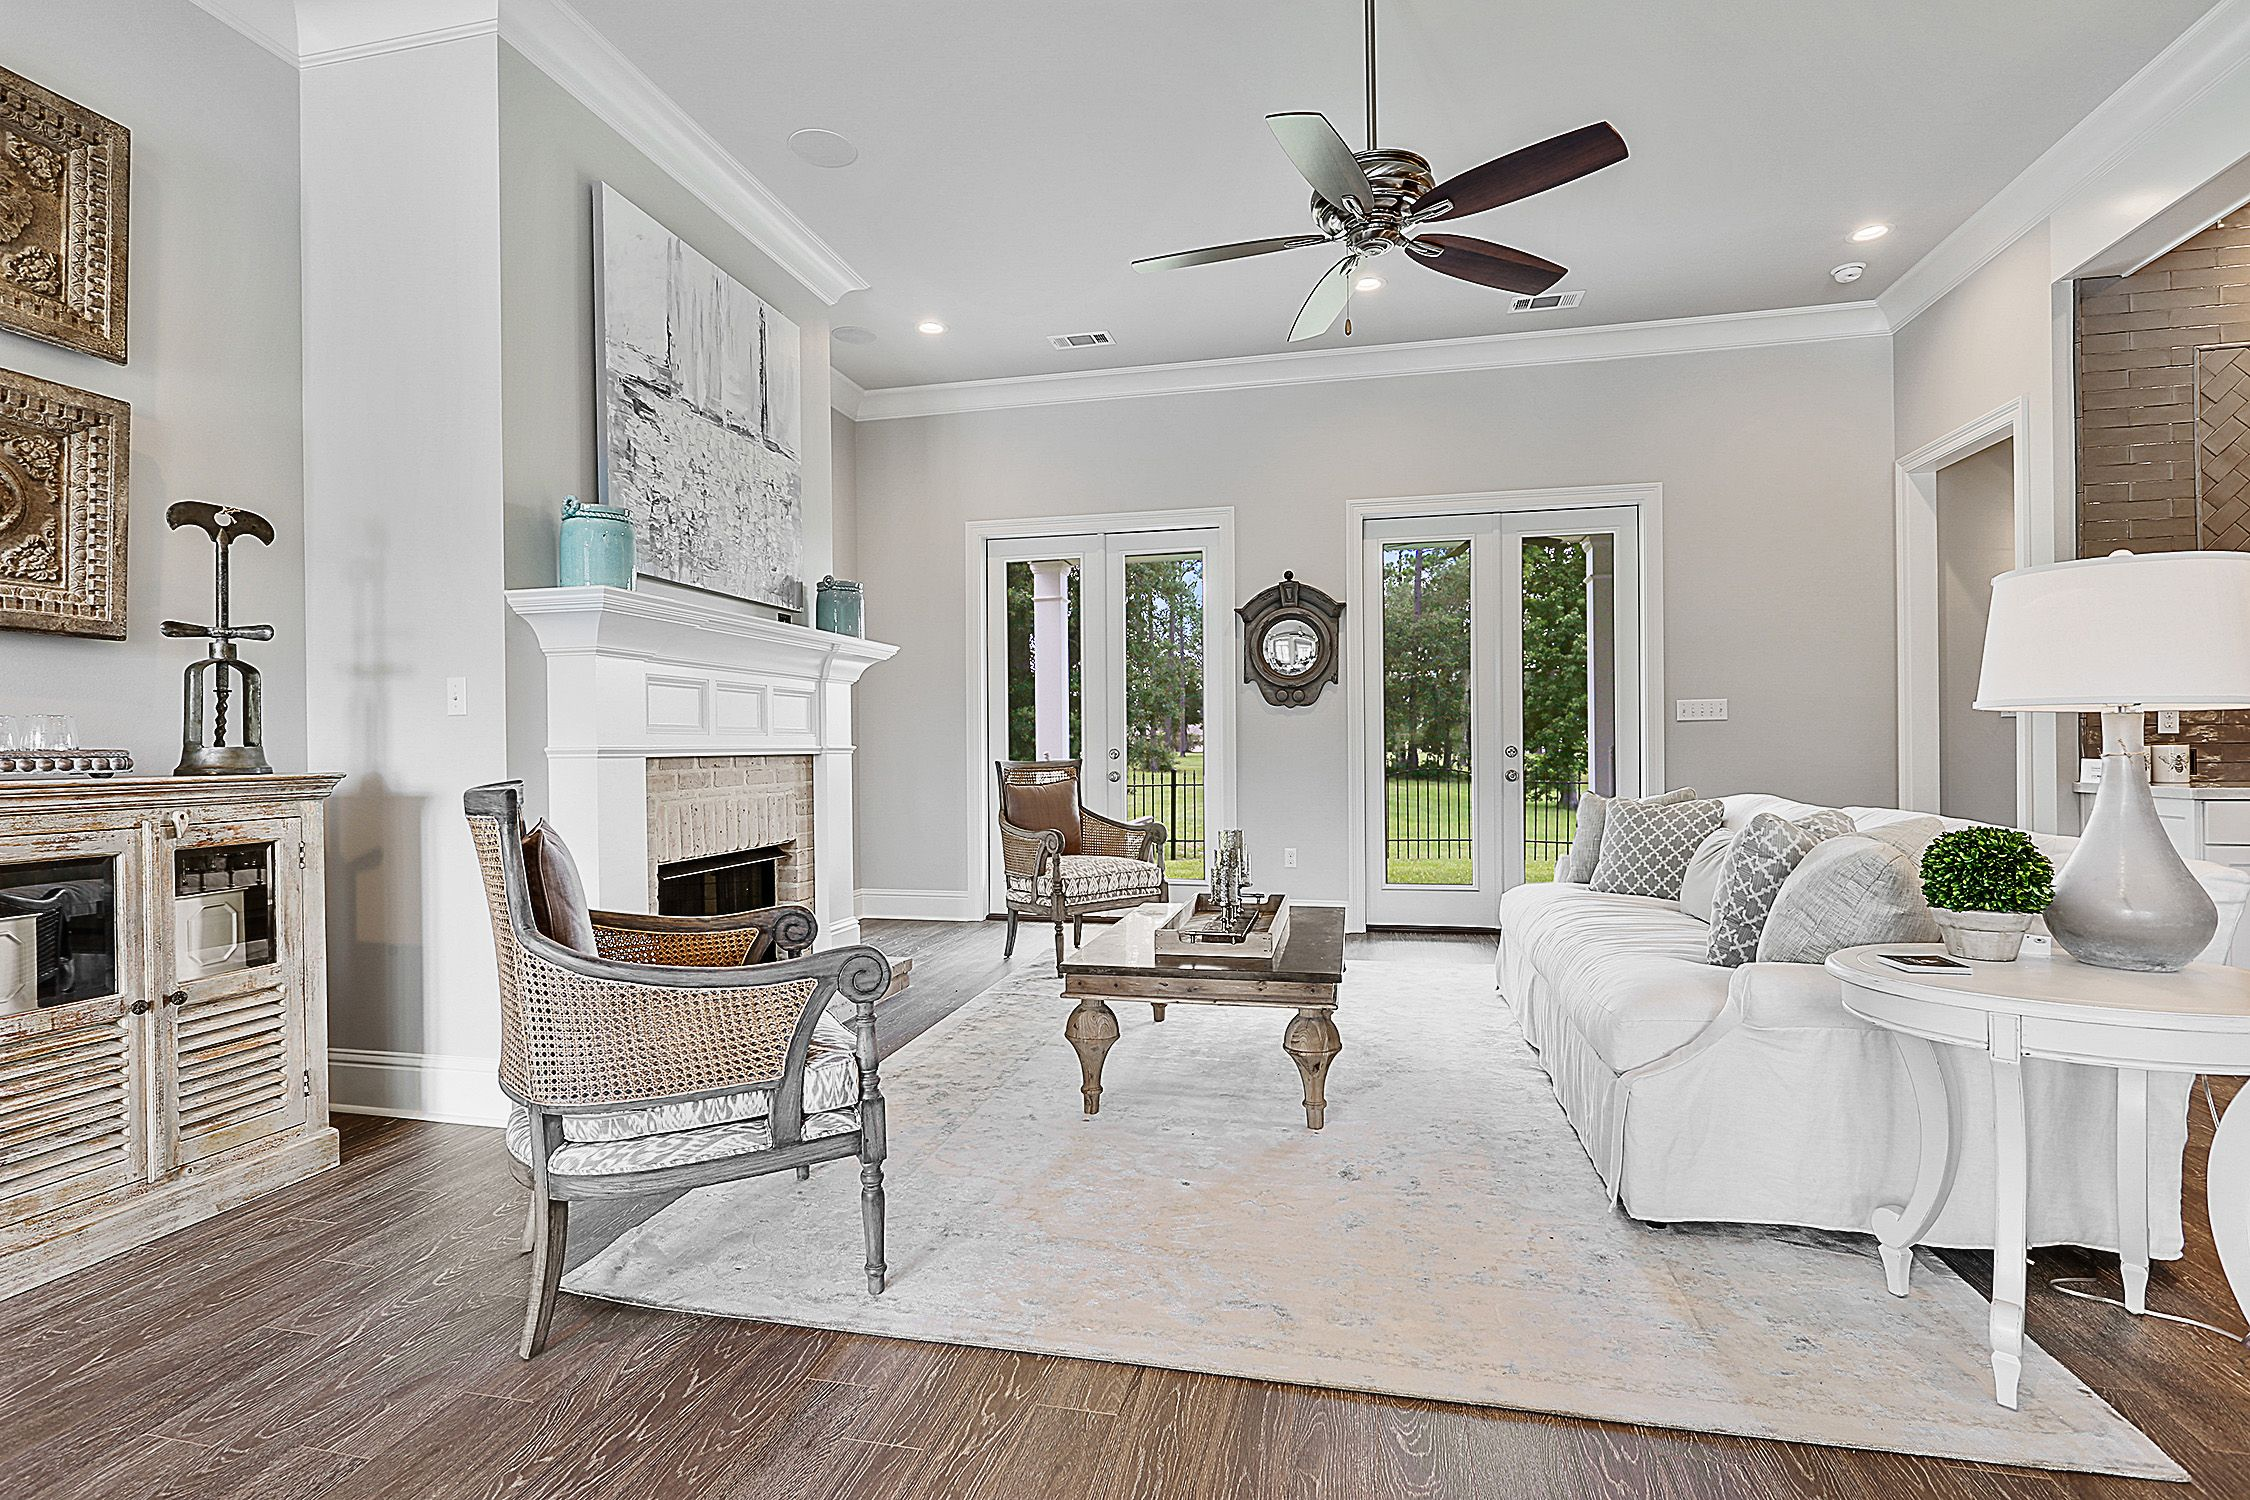 Living Area featured in the Turnberry By Highland Homes in New Orleans, LA